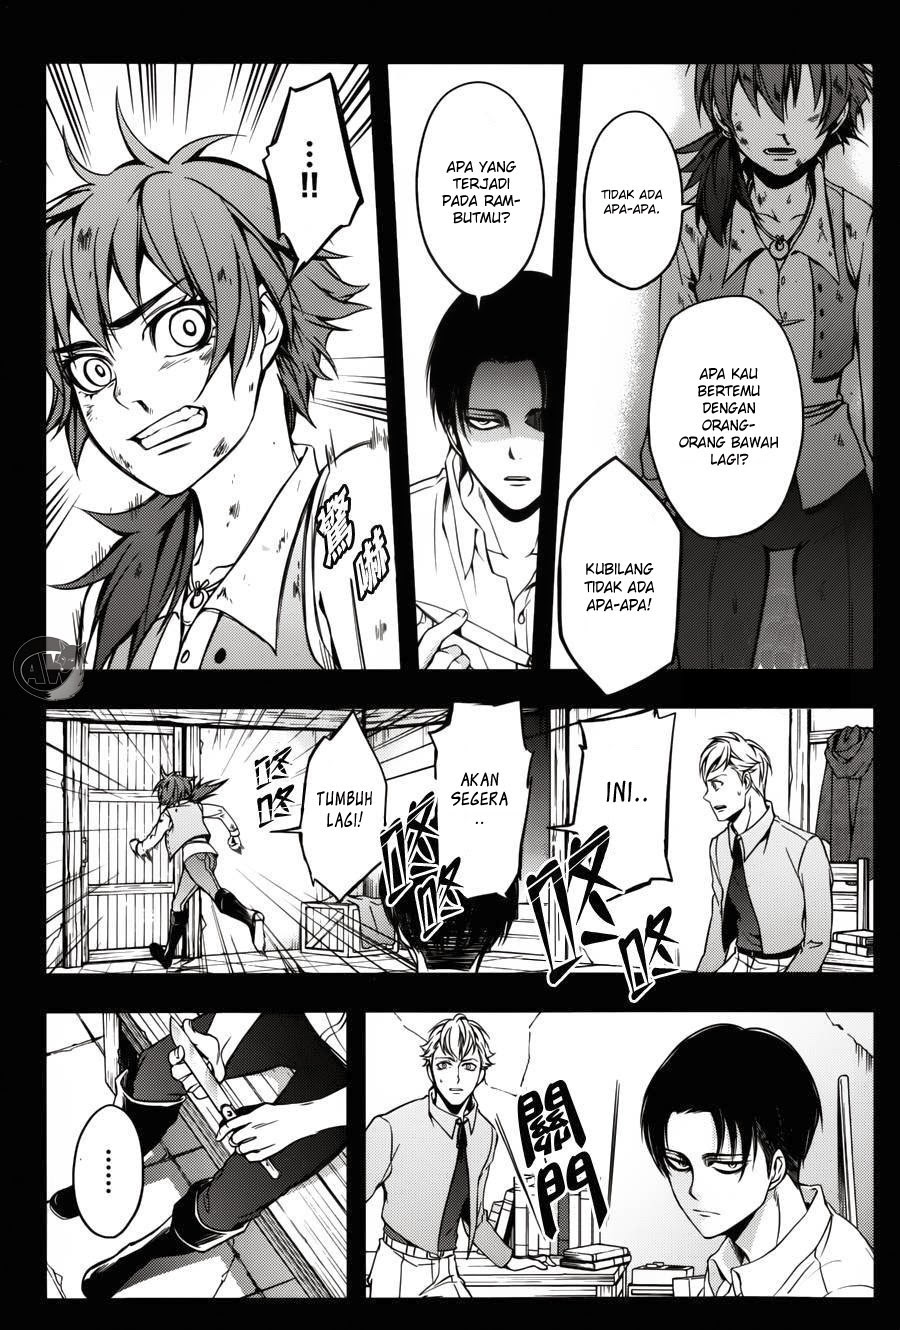 Komik shingeki no kyojin gaiden 002 - chapter 2 3 Indonesia shingeki no kyojin gaiden 002 - chapter 2 Terbaru 27|Baca Manga Komik Indonesia|